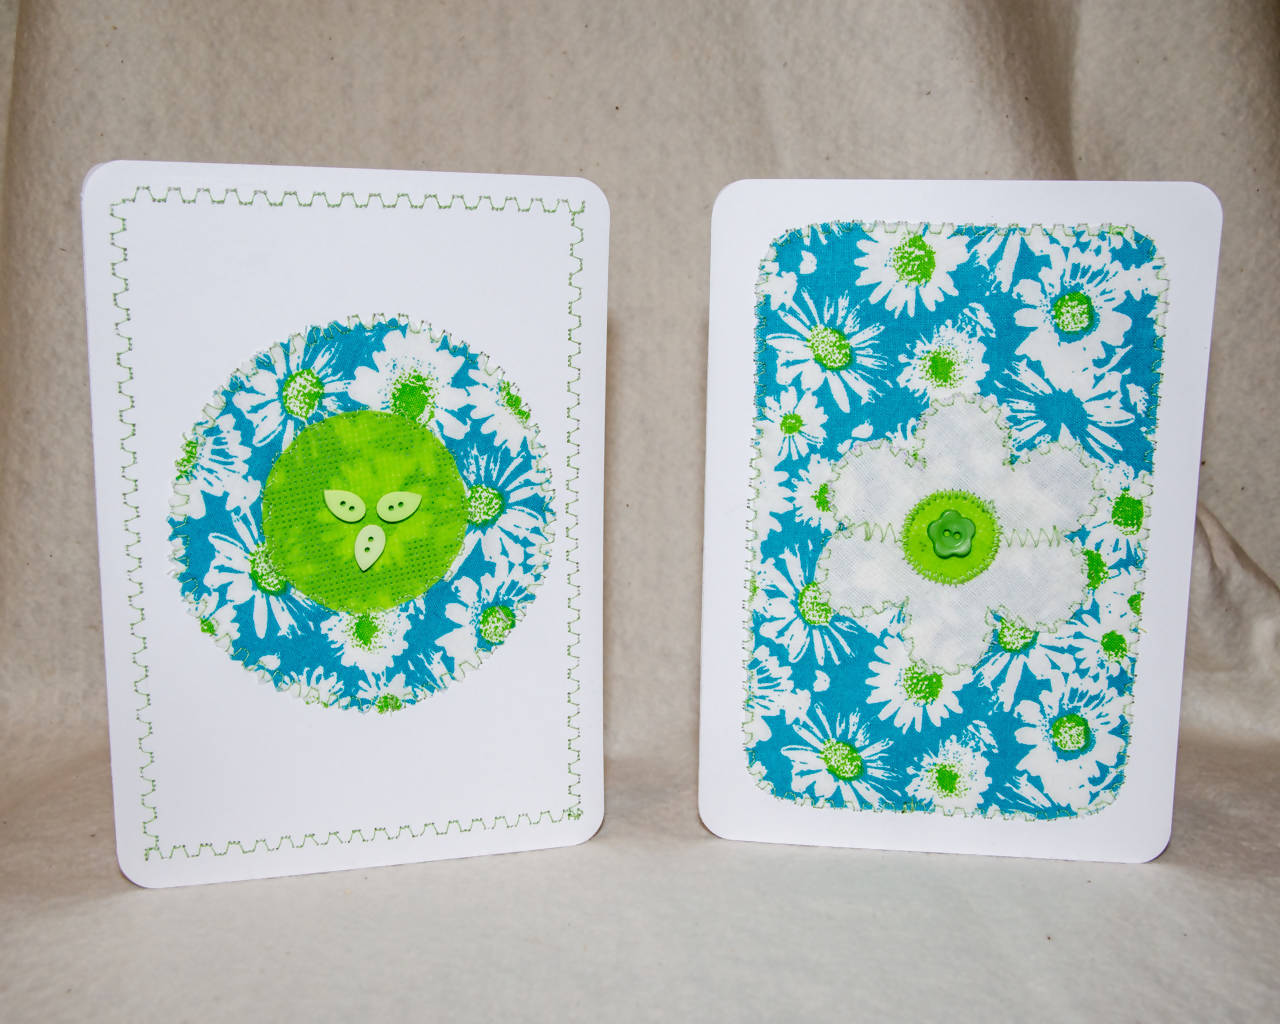 Flower Greeting cards - Handmade - Fabric on paper / Blank Inside. Package of 2